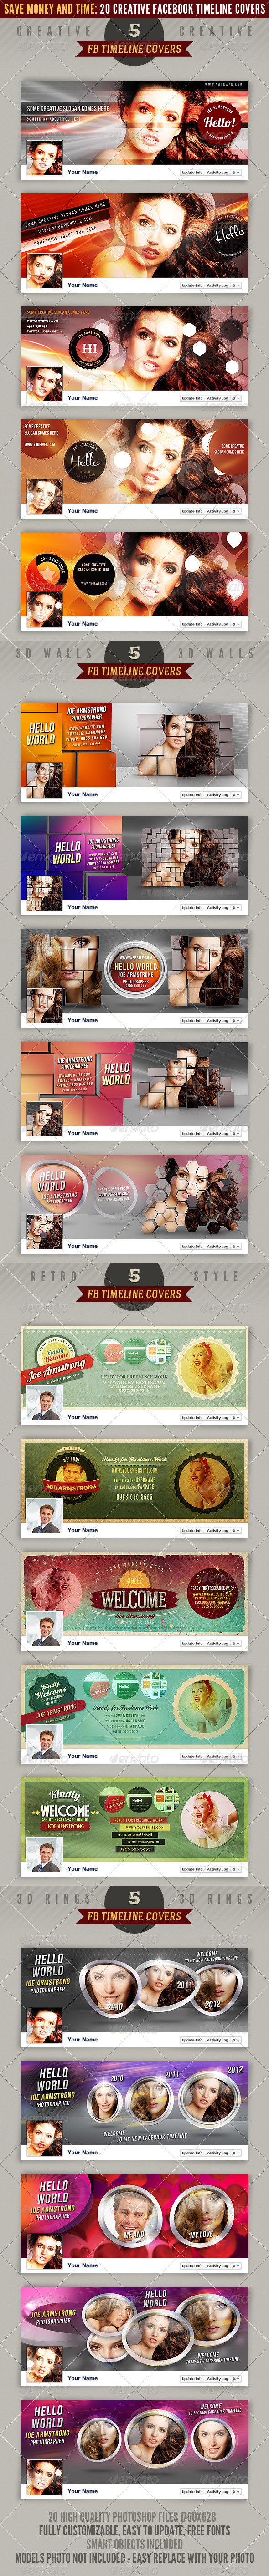 20 Facebook Timeline Covers Bundle - Facebook Timeline Covers Social Media